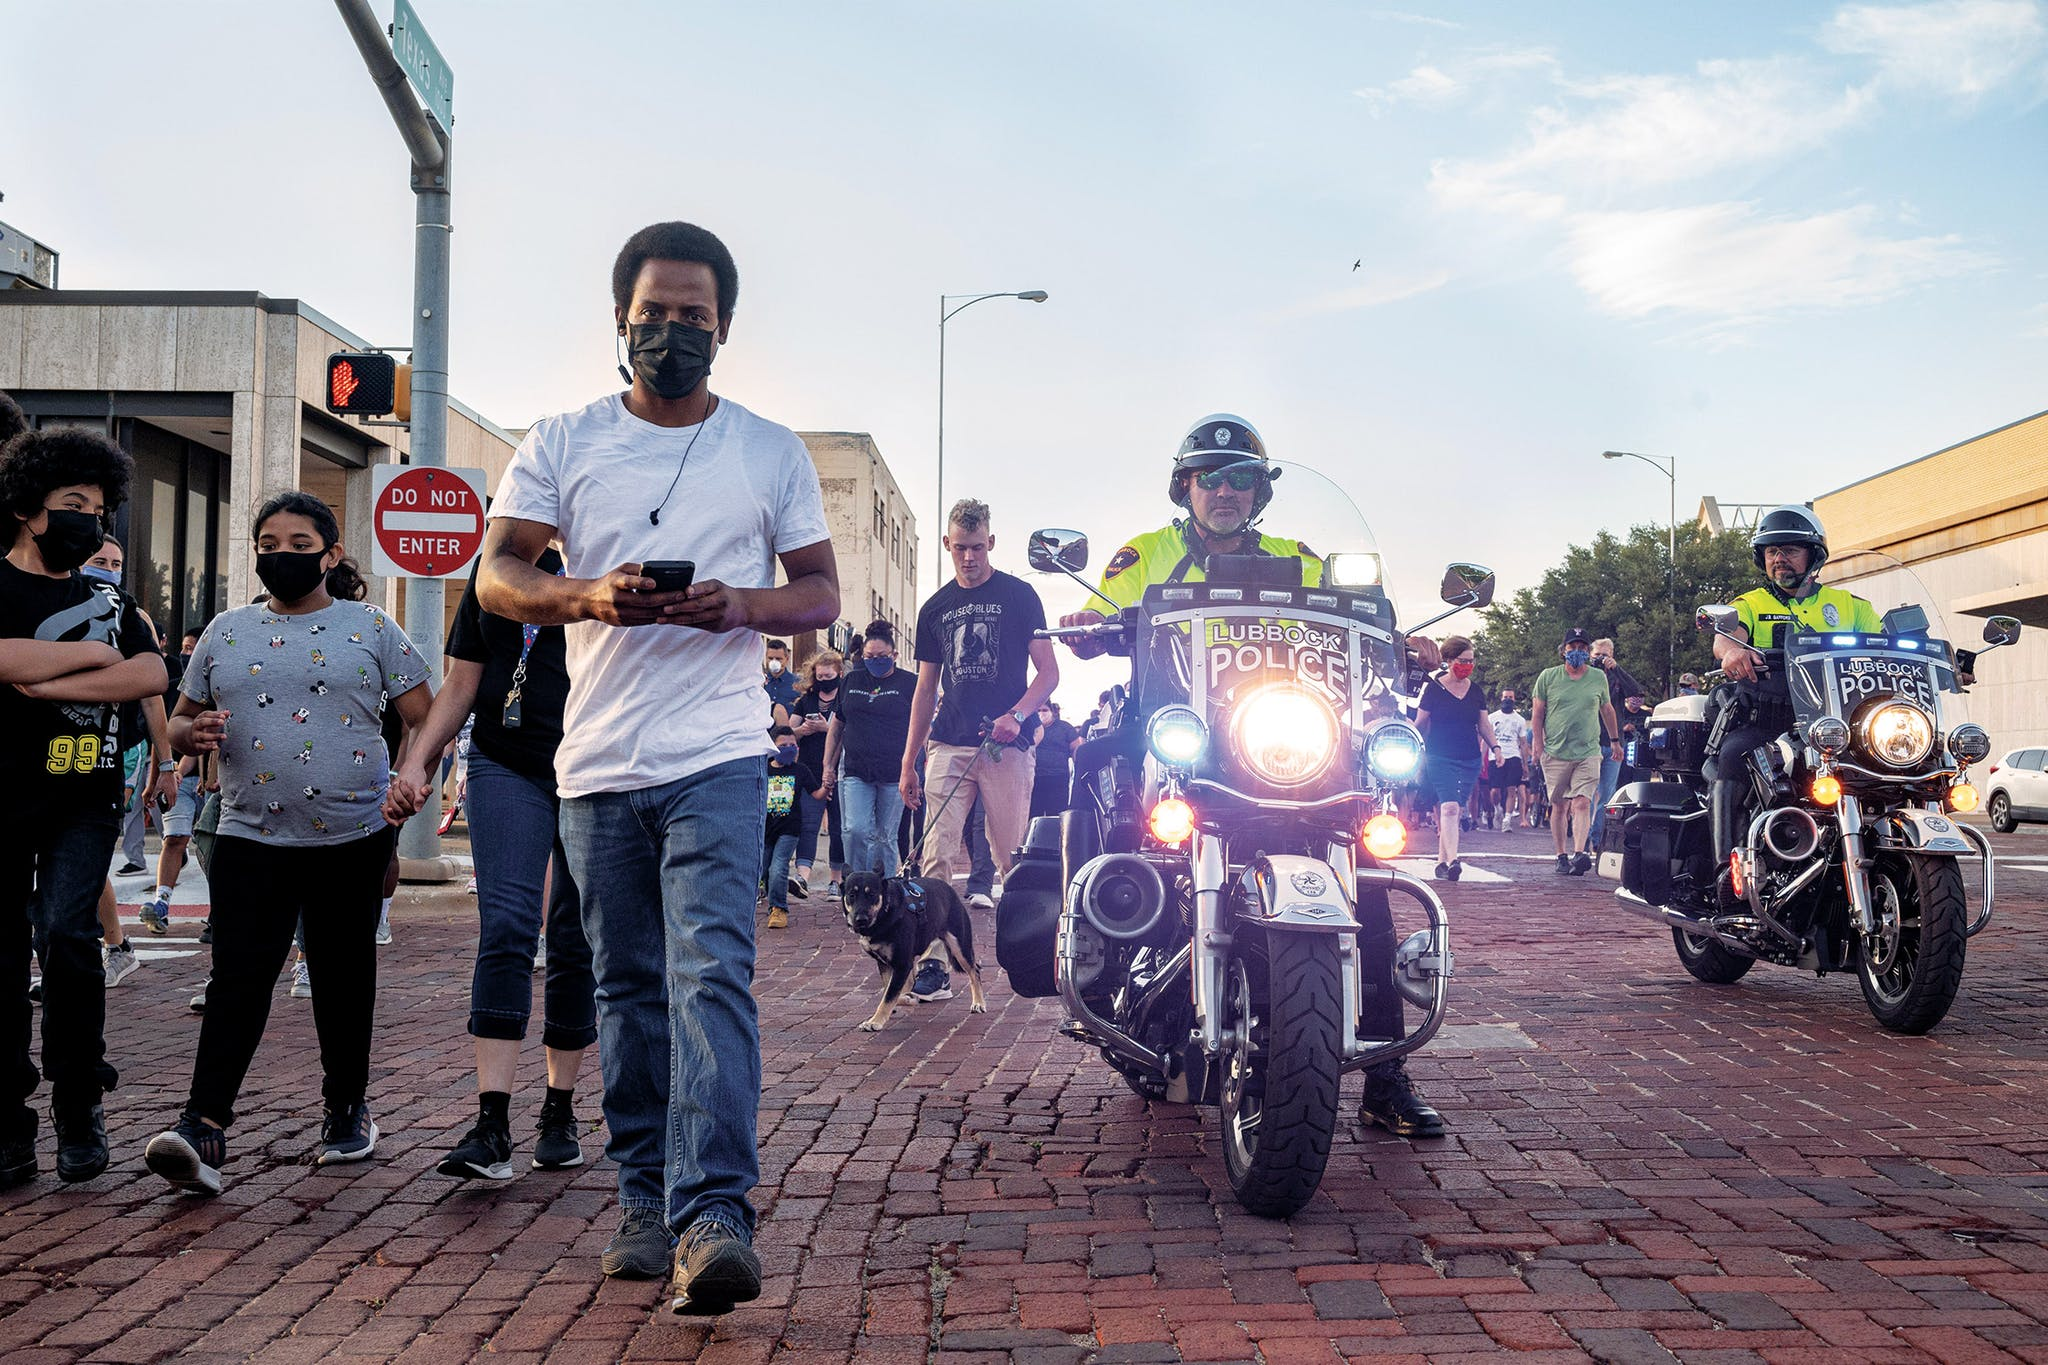 Participants in the 100 Black Men of West Texas solidarity walk are escorted by police officers at 8 p.m. in Lubbock on June 1, 2020.